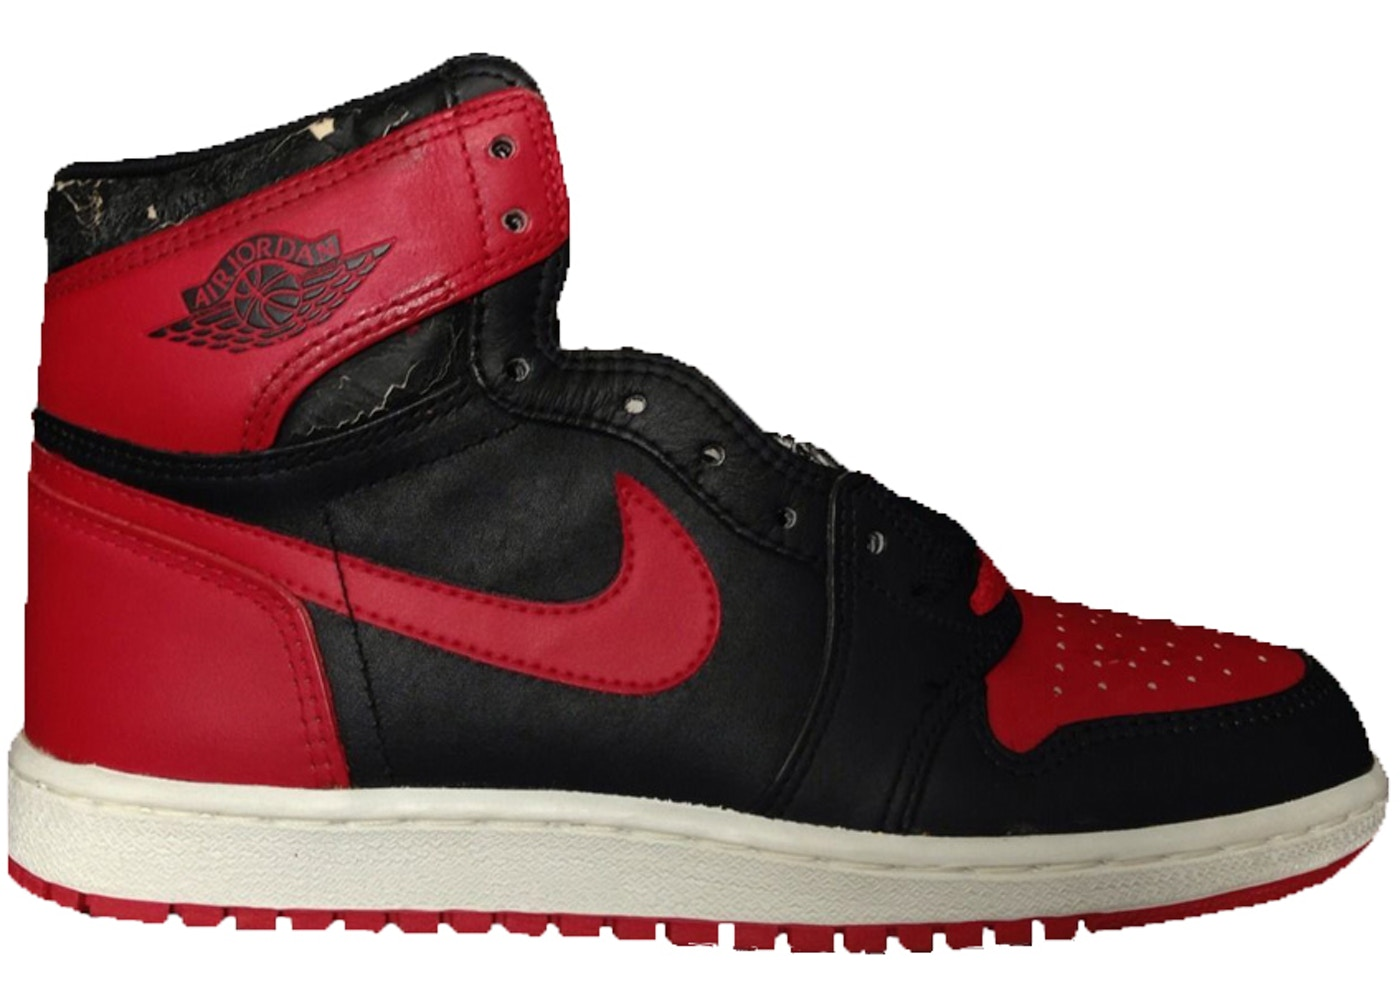 innovative design 6ec31 08965 Jordan 1 OG Bred (1985) - 4285